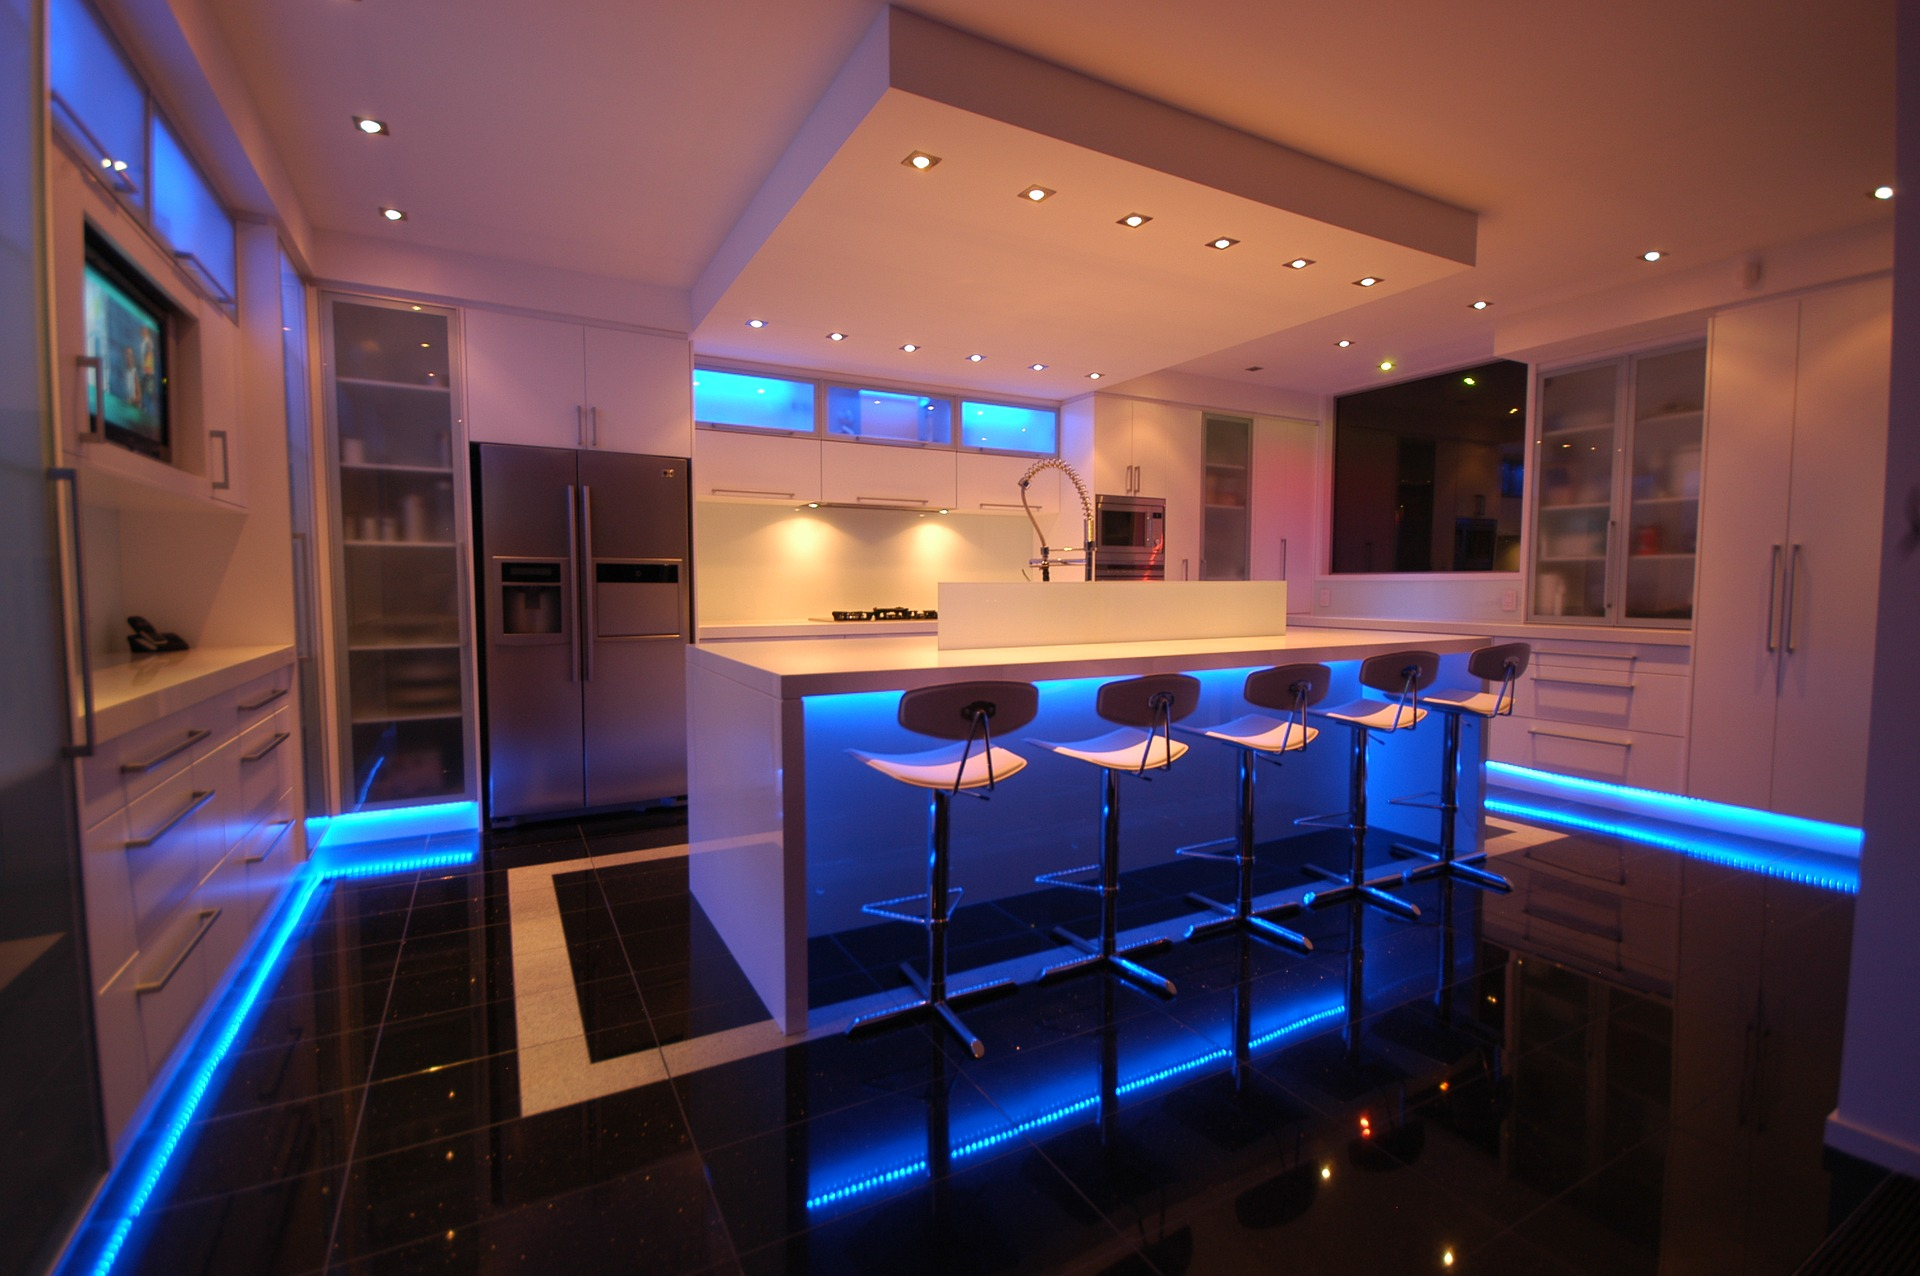 Home Appliances Make Decisions for Your Benefit